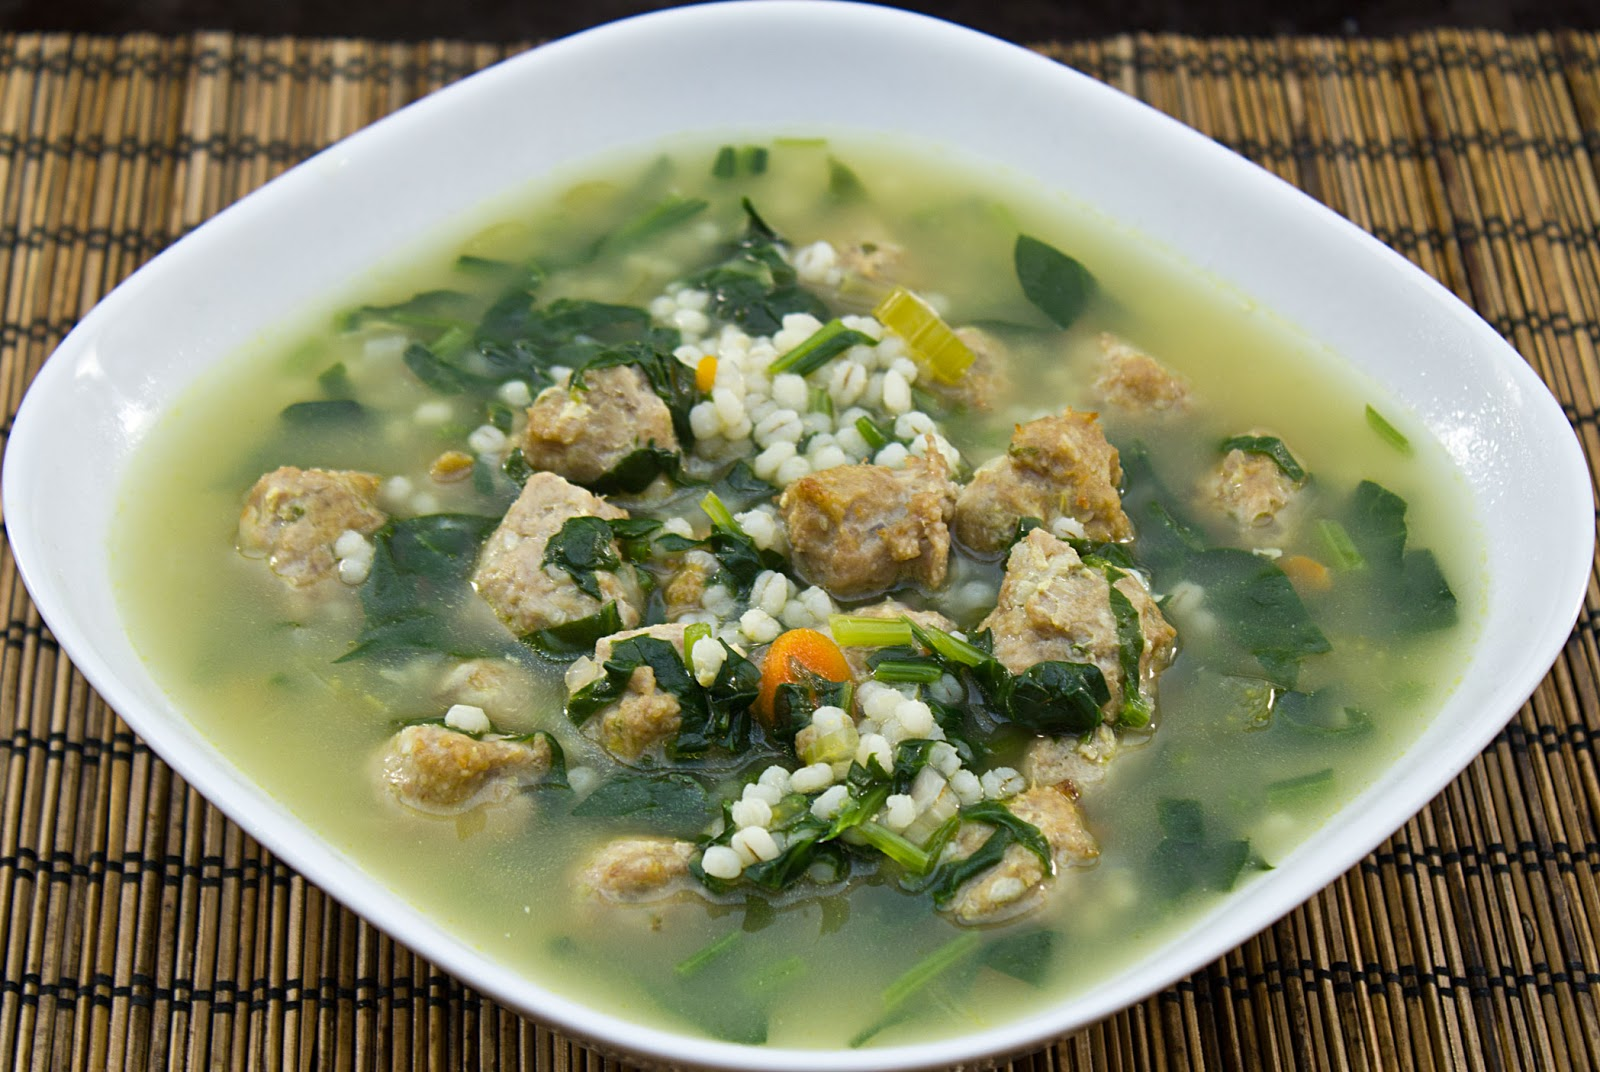 fabulous fridays: Italian Wedding soup